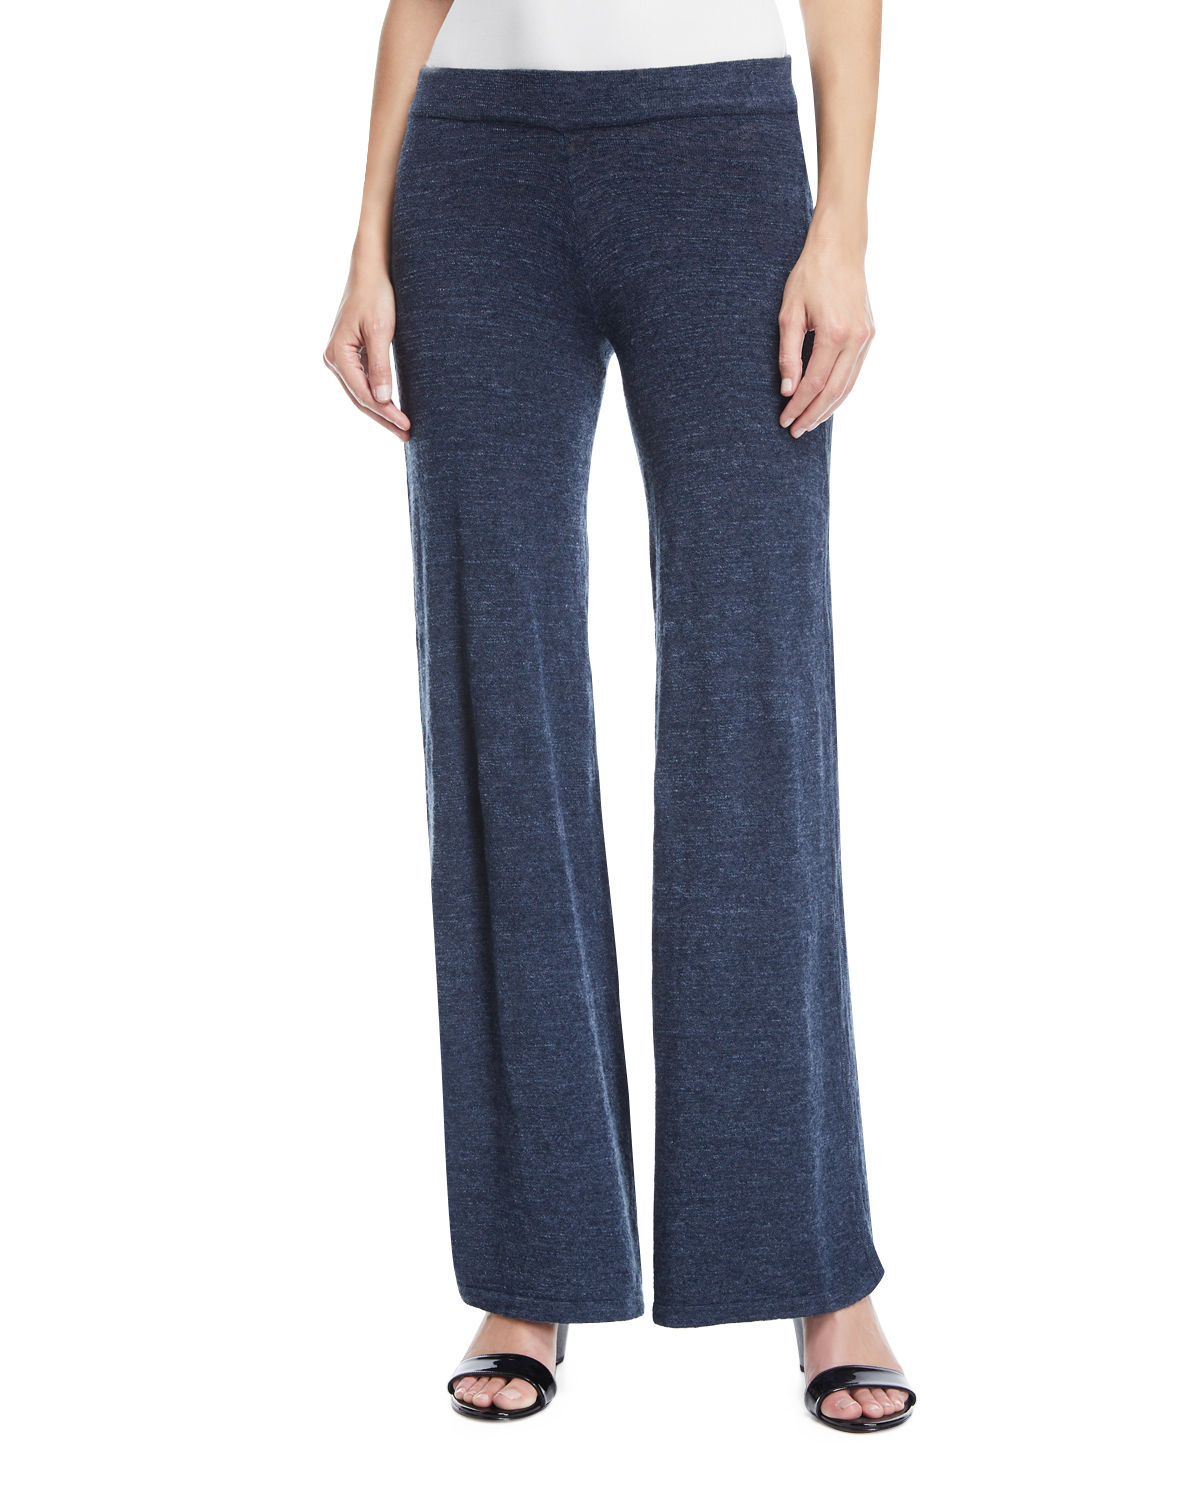 Classic Jersey Stretch Pants